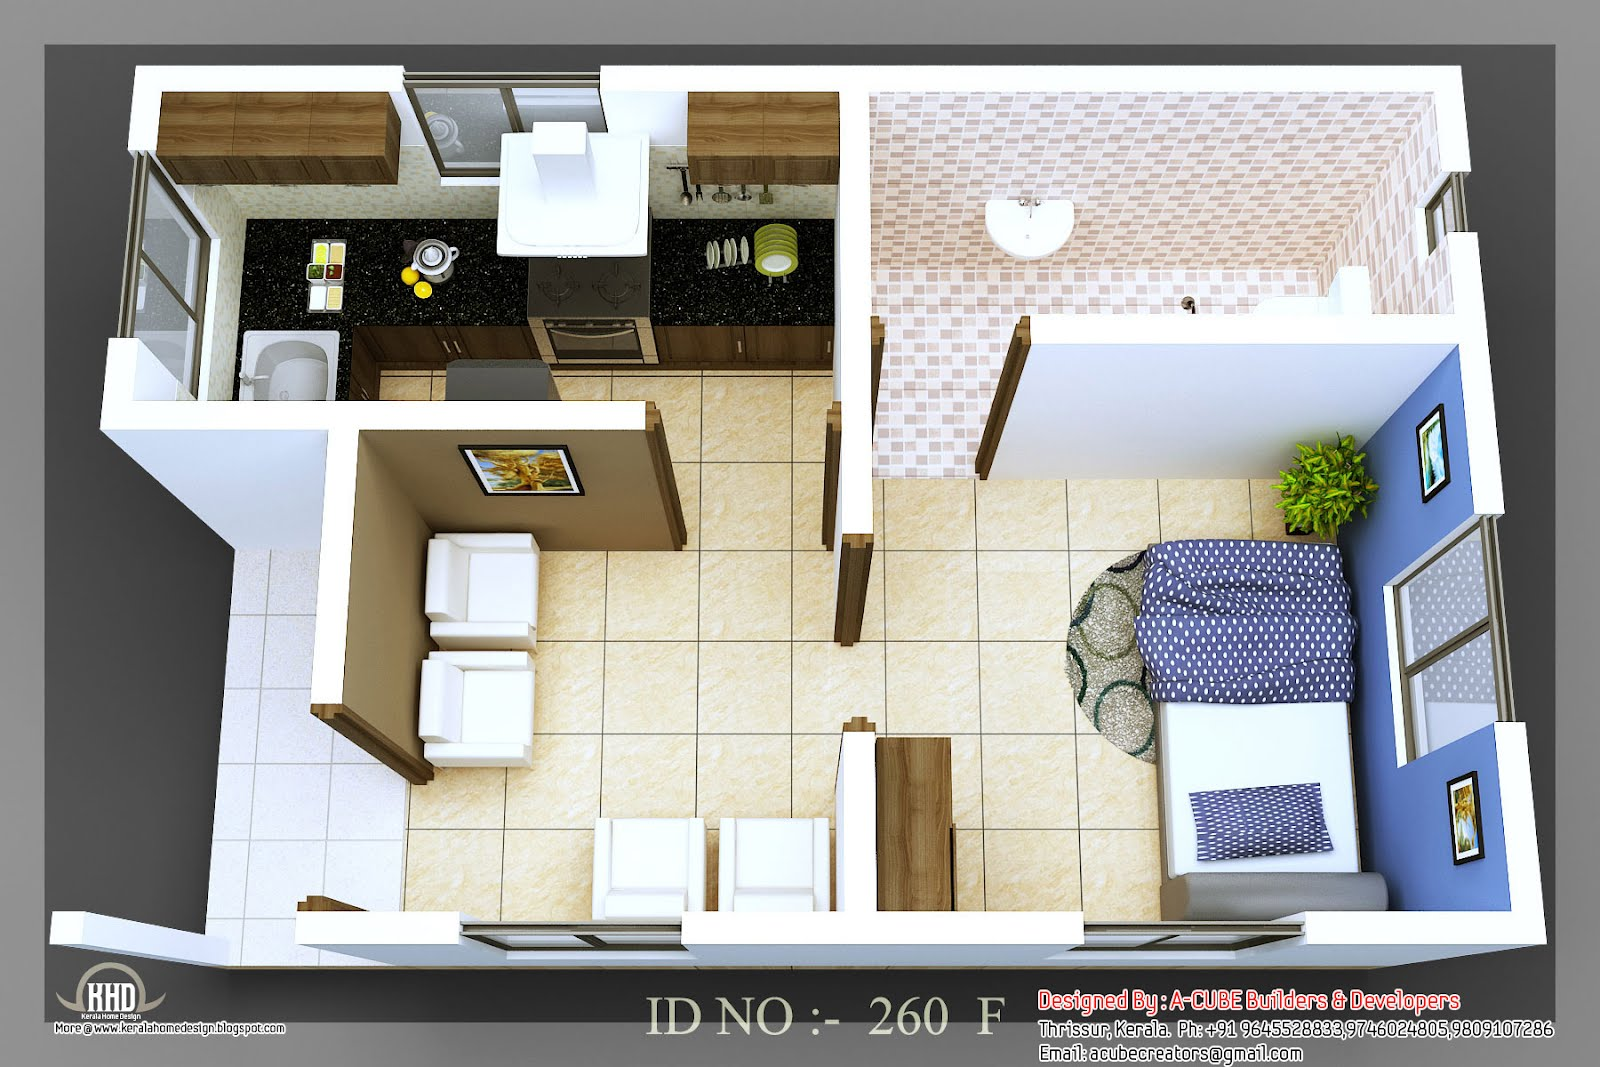 3d isometric views of small house plans home appliance for Good house plans and designs